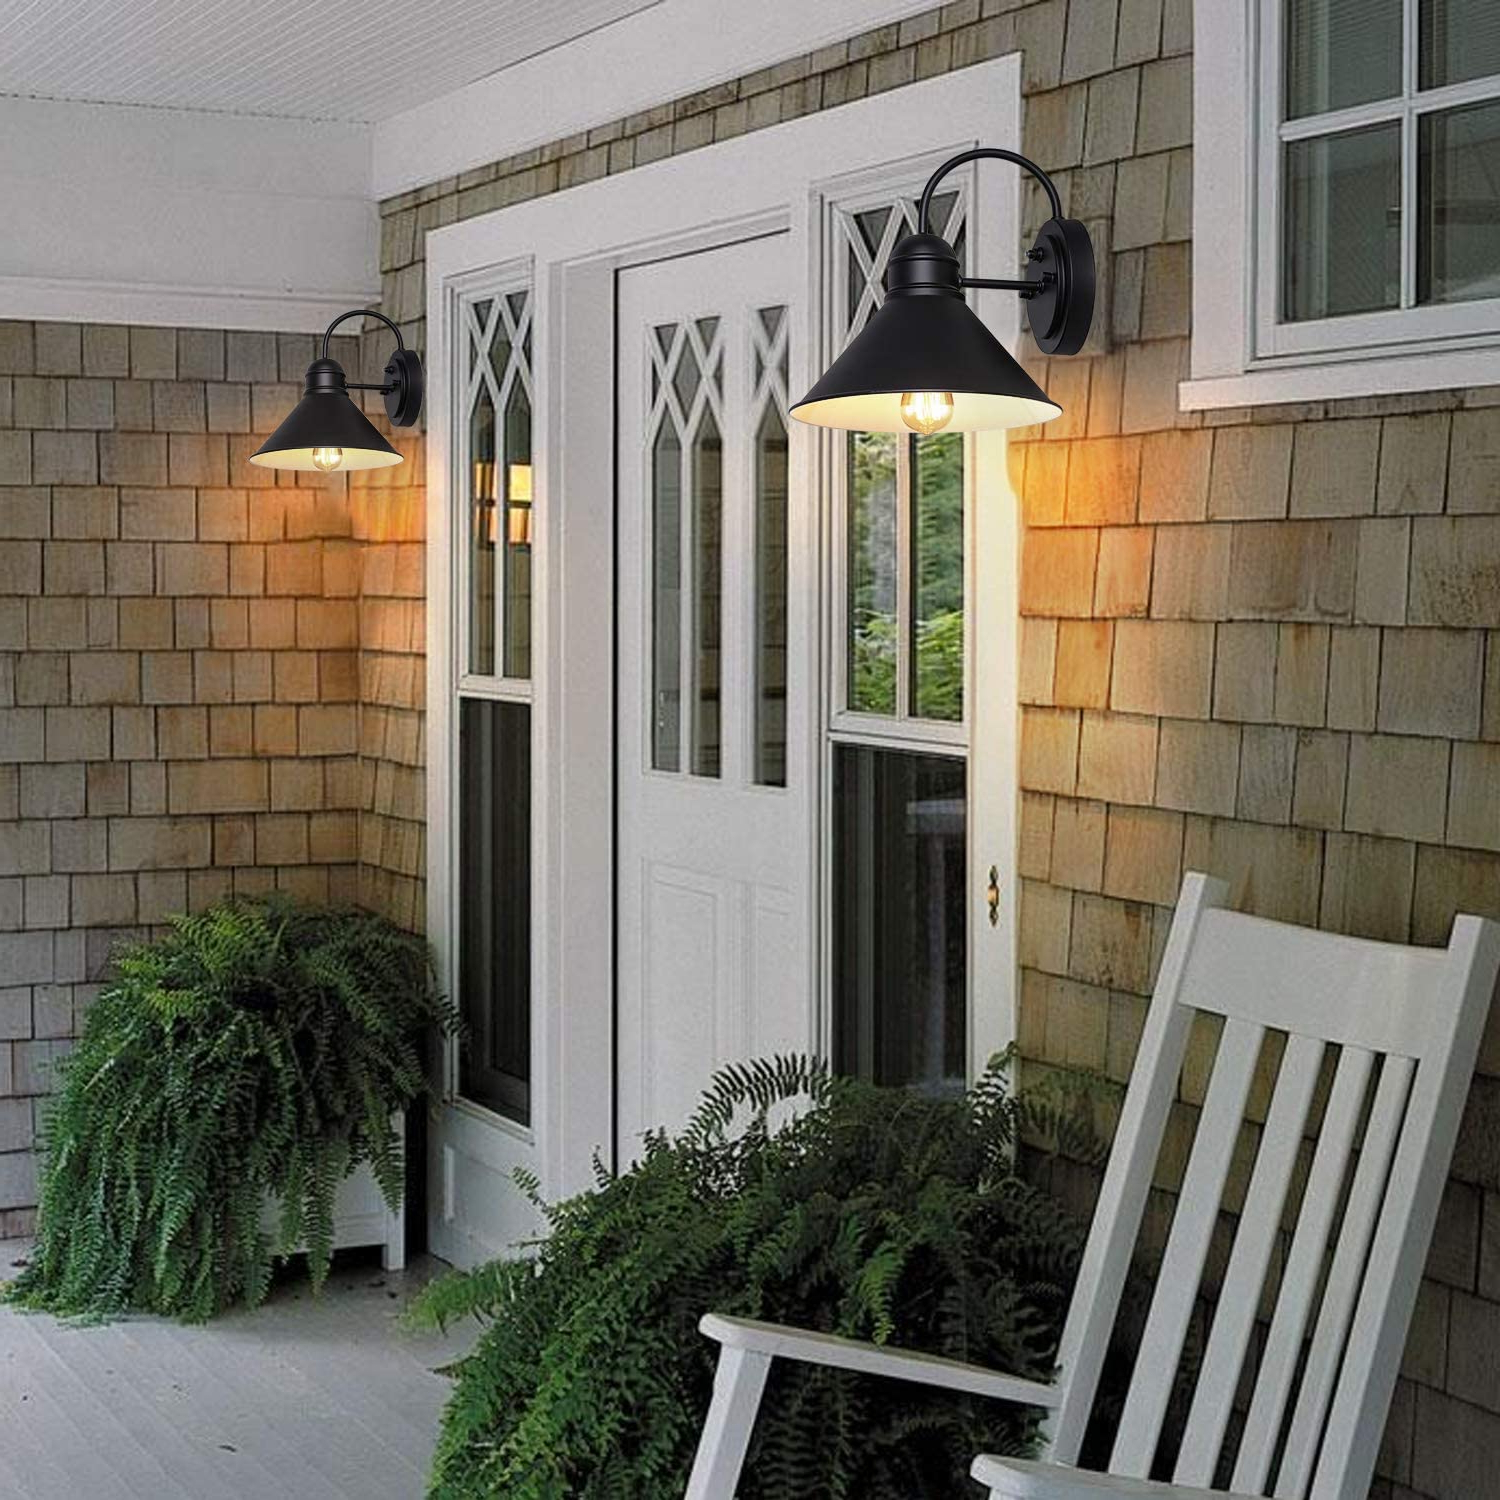 2019 Manteno Black Outdoor Wall Lanterns With Dusk To Dawn Intended For Dusk To Dawn Sensor Outdoor Wall Sconce, Exterior Wall (View 19 of 20)